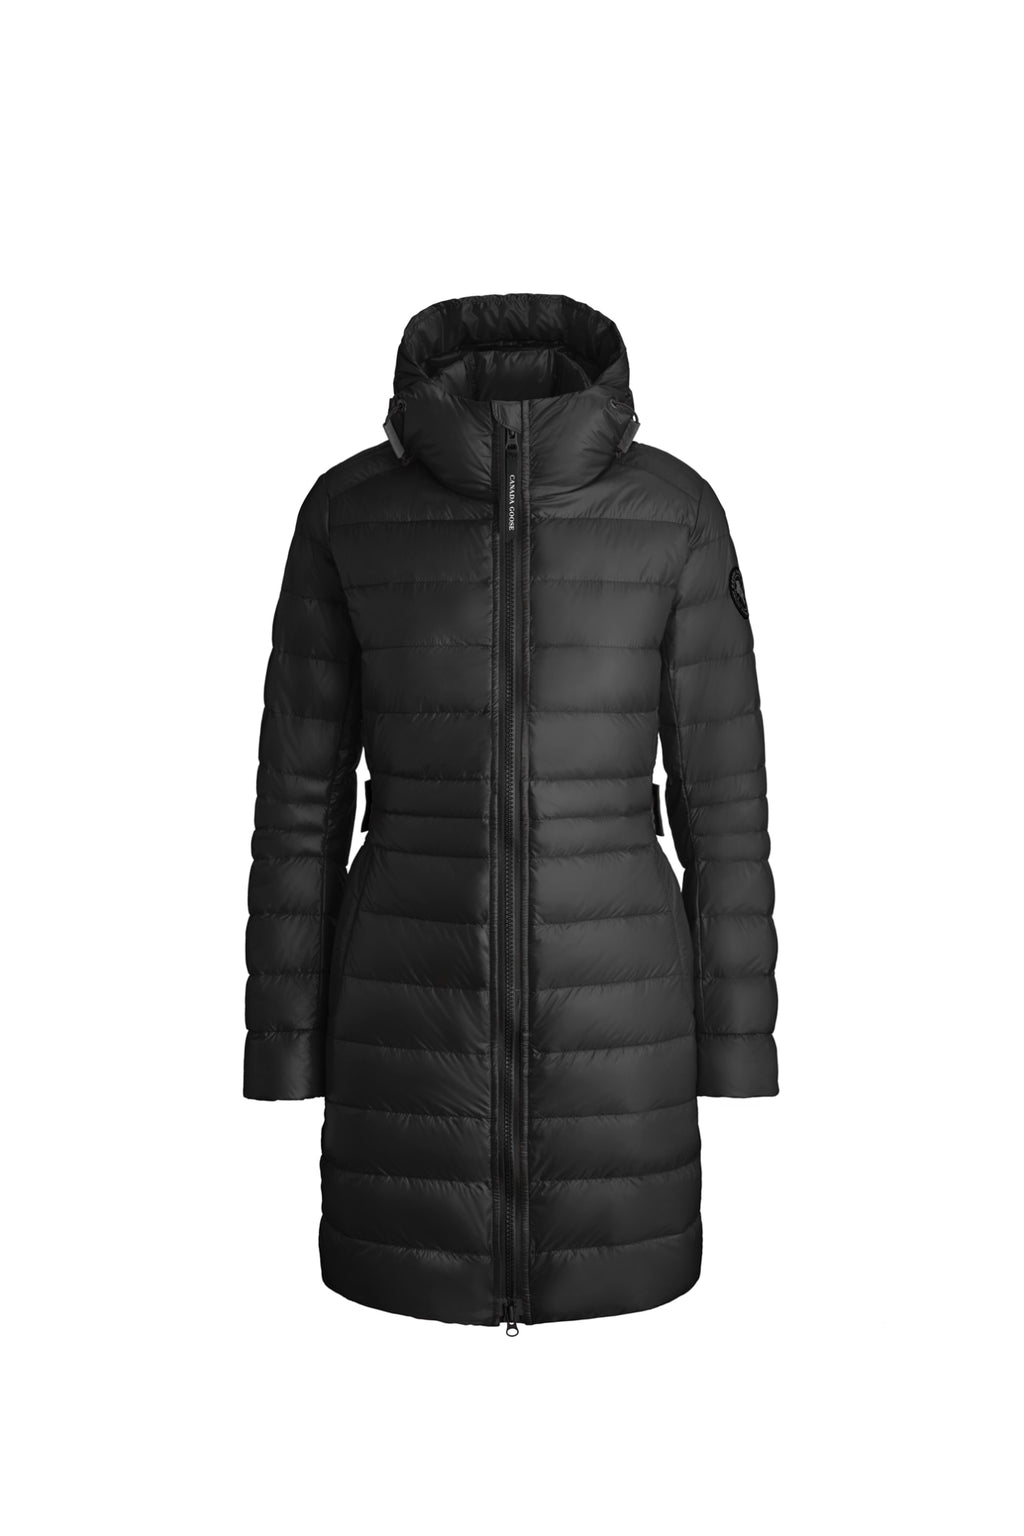 Black Cypress Hooded Black Label Down Jacket